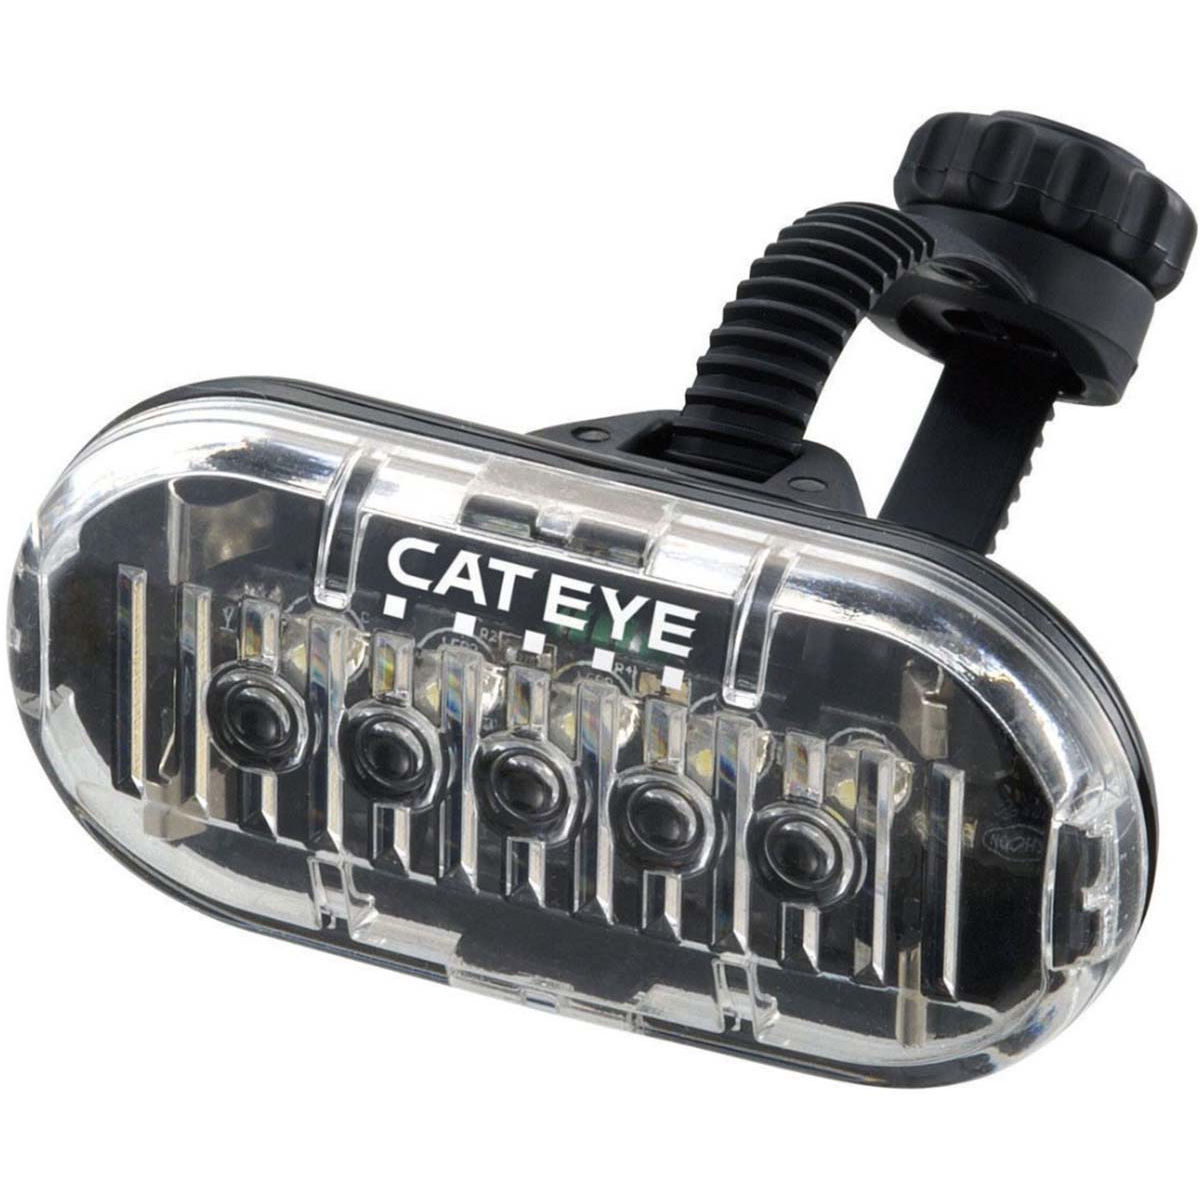 Cateye Omni 5 Front Light - Luces delanteras